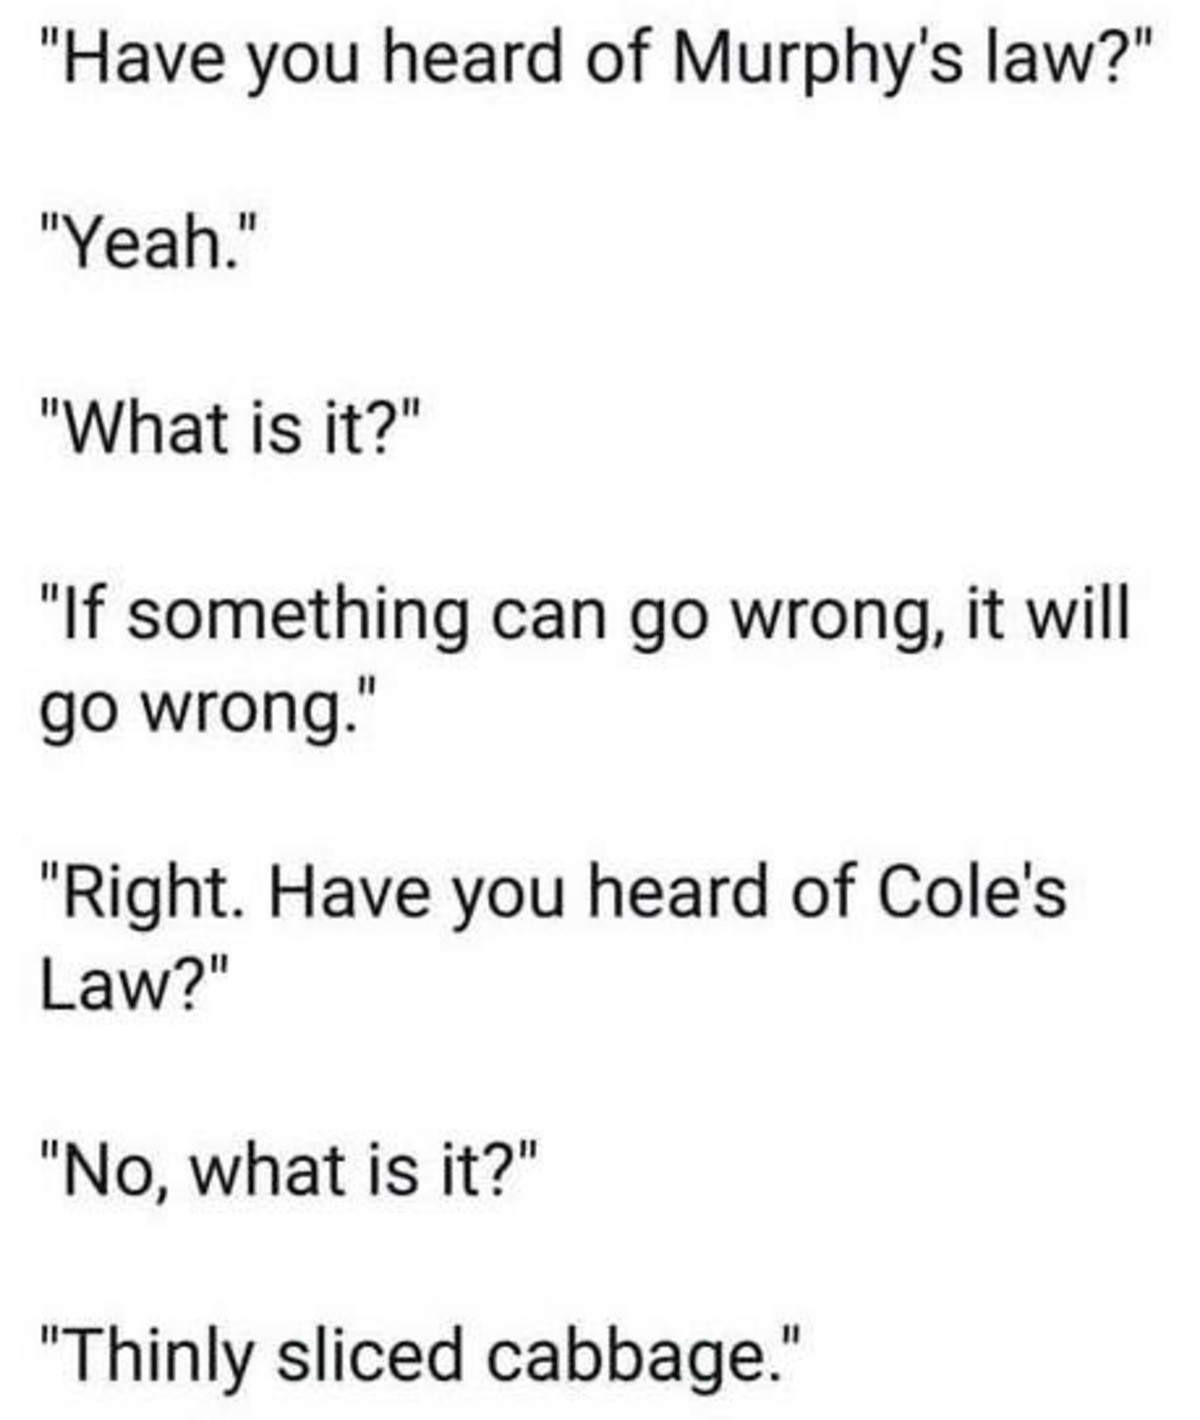 The Law. My cabbages... Cabbage you say